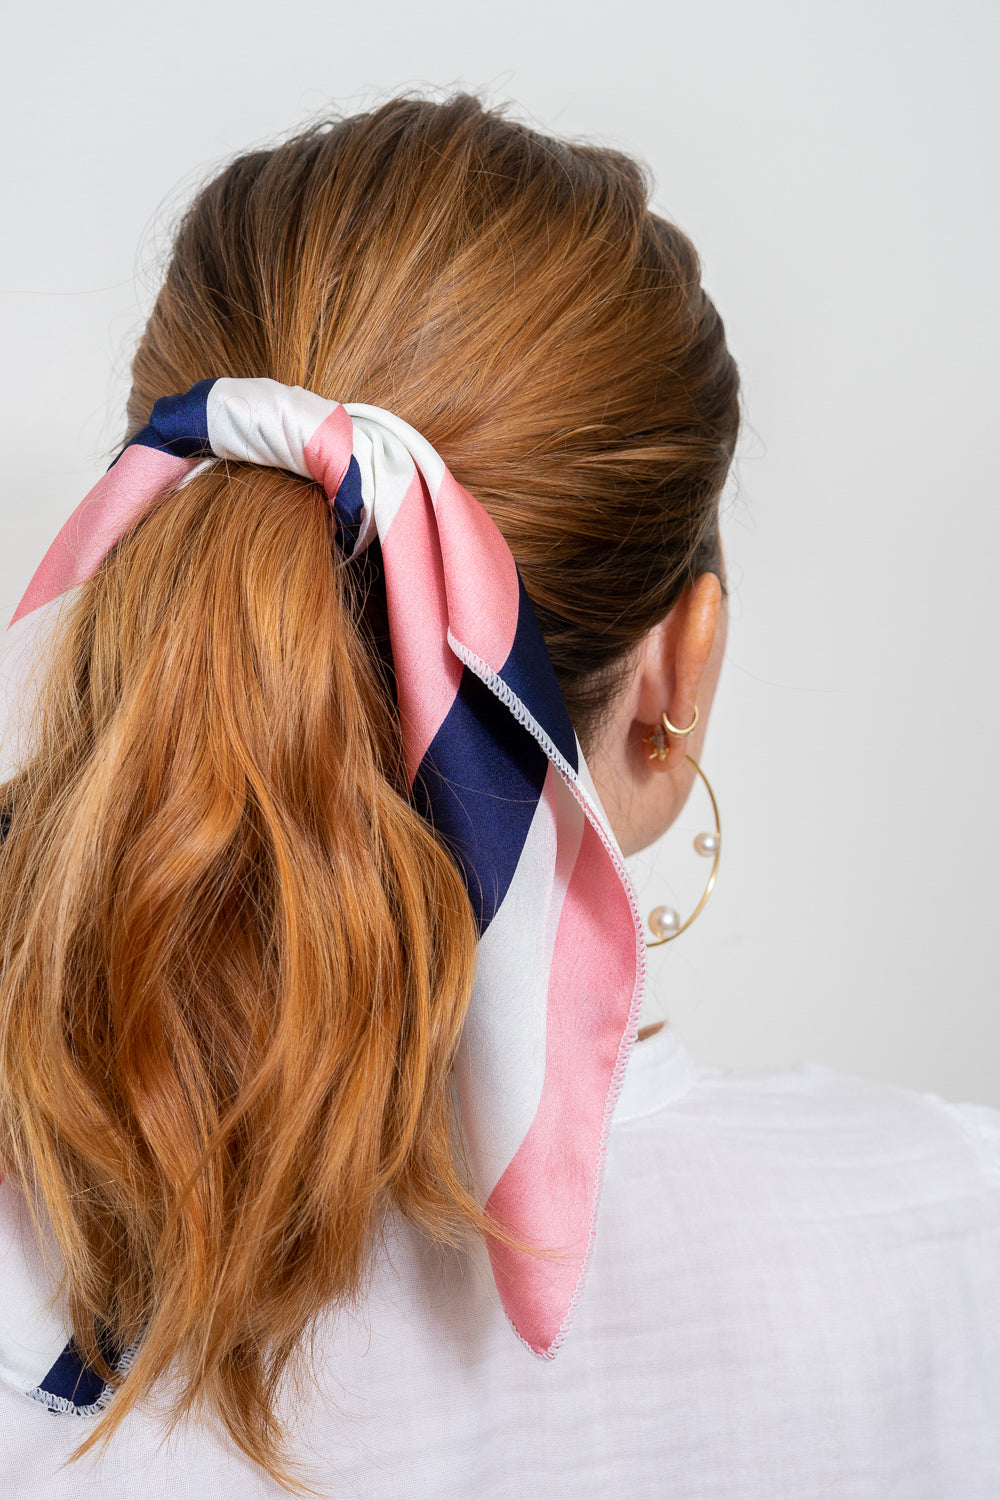 red head with pink navy white striped scarf tied in hair ponytail hoop earrings Janna Conne